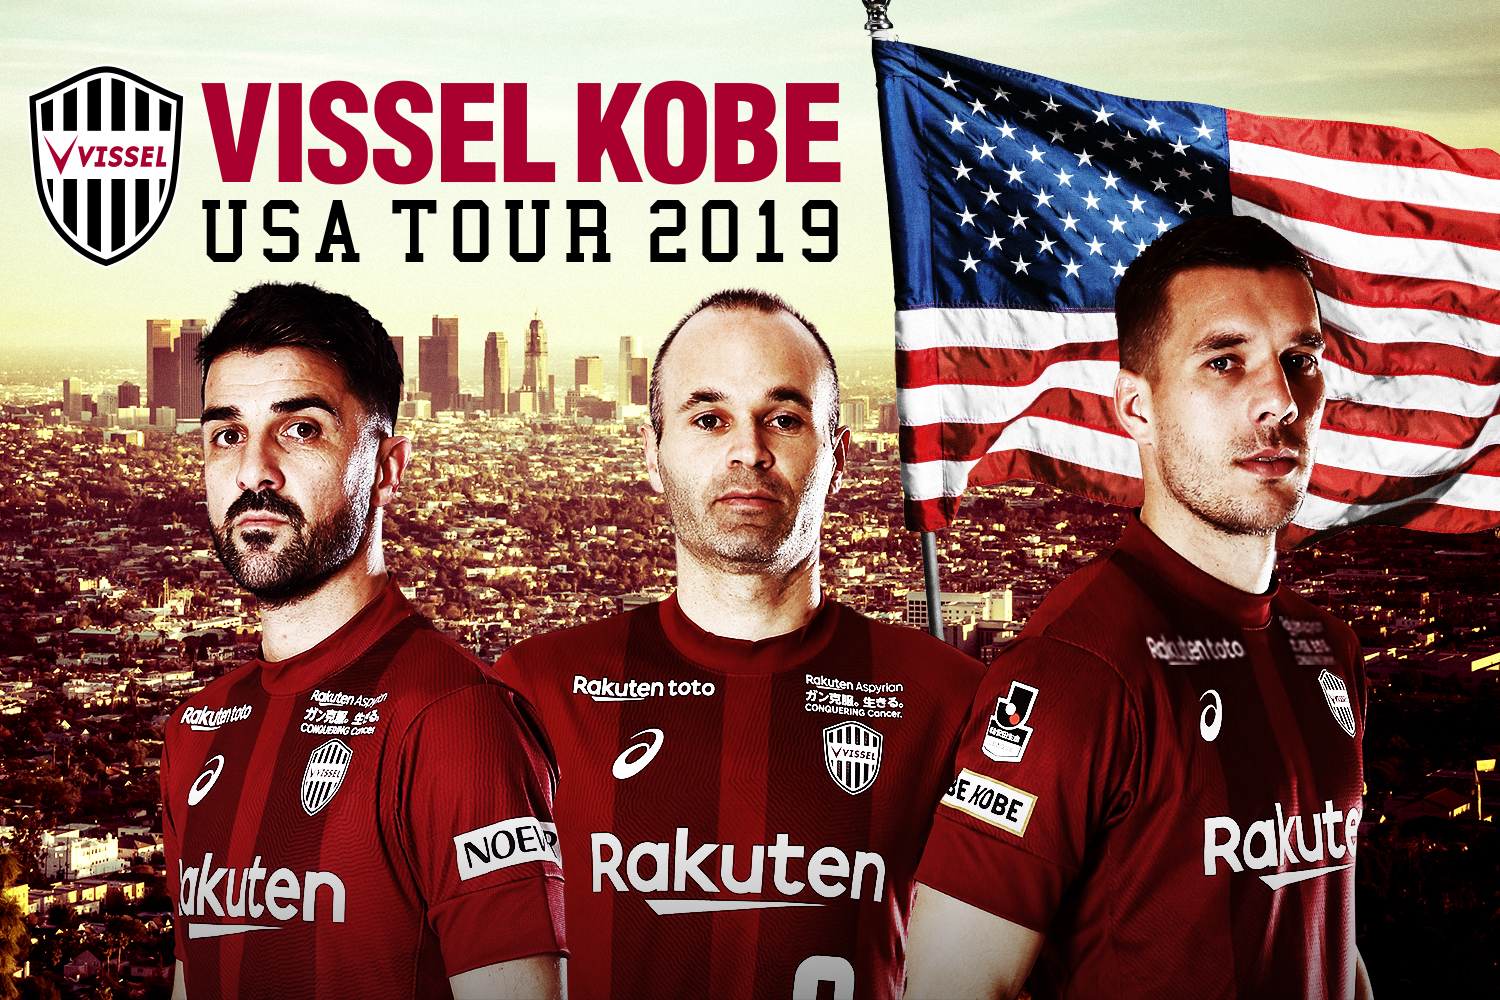 Vissel Kobe USA Tour 2019